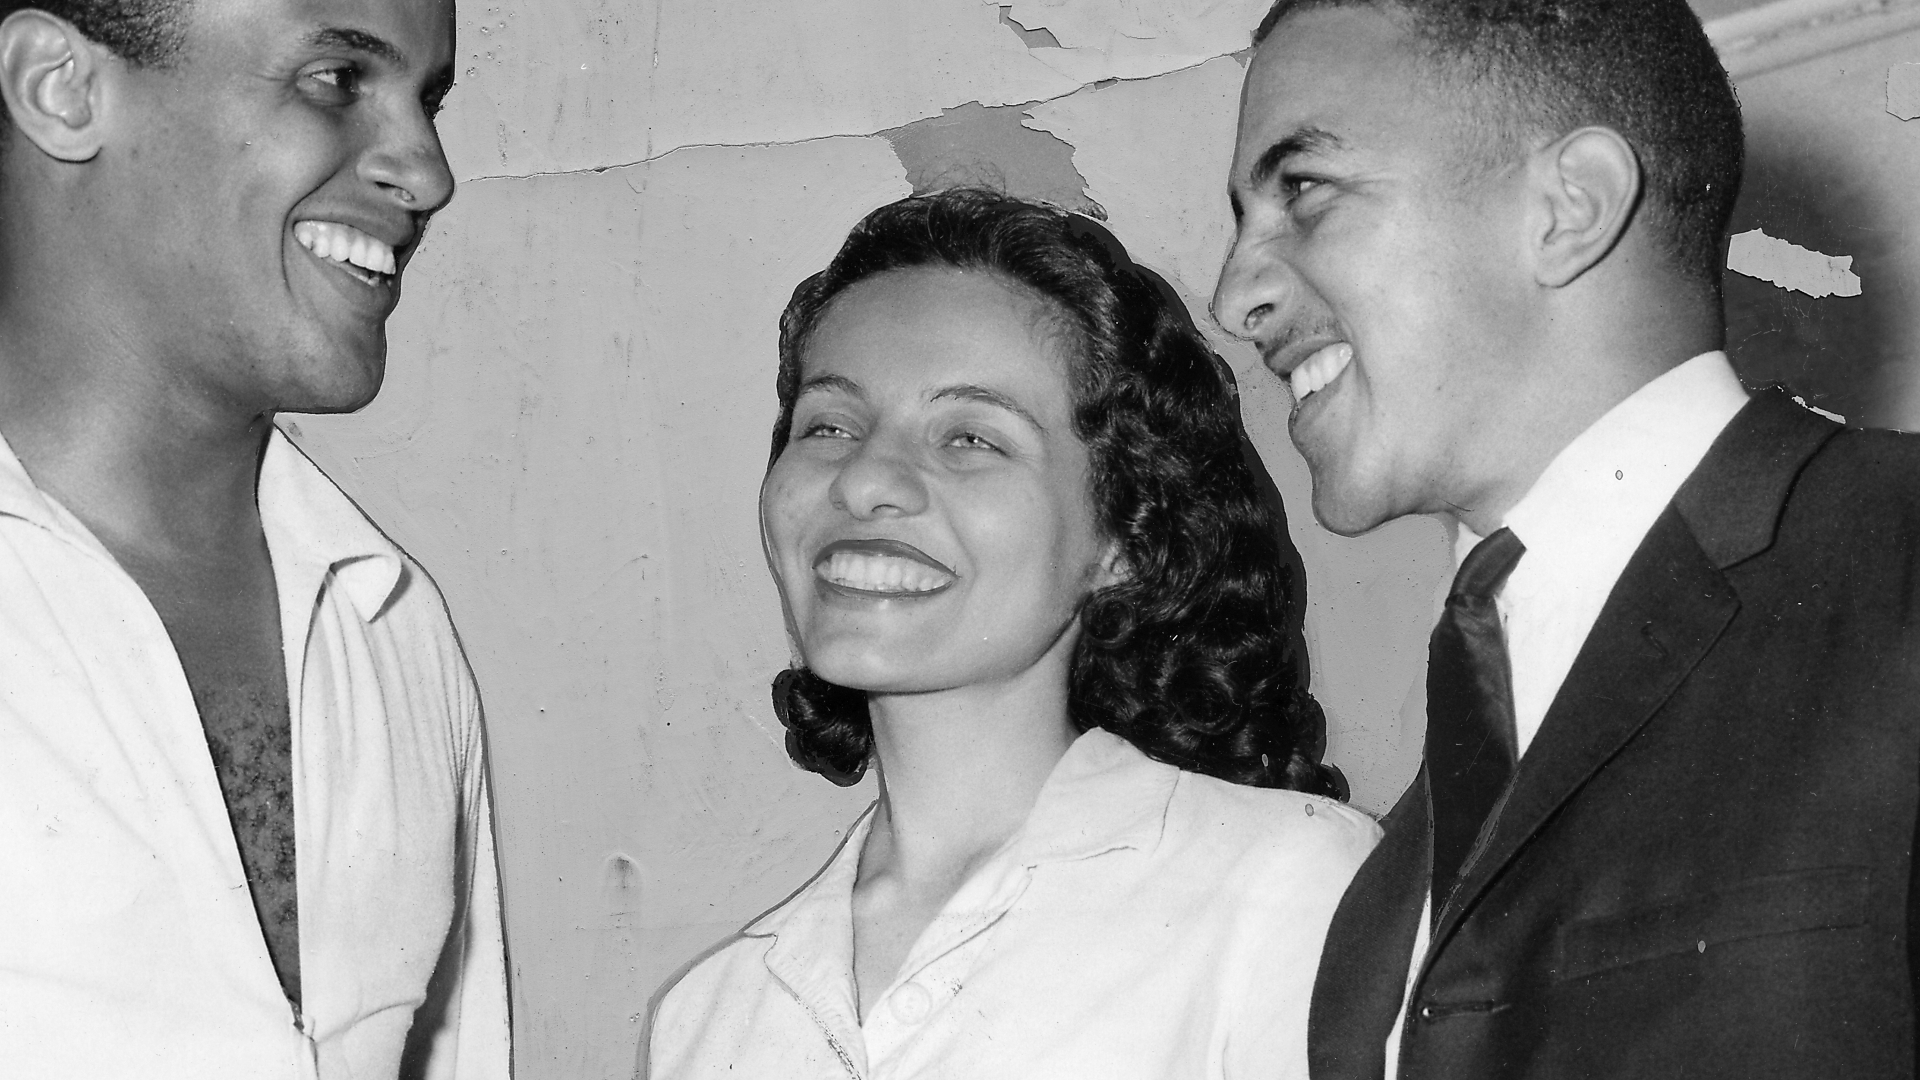 Musician and actor Harry Belafonte with Freedom Riders Diane Nash and Charles Jones, discussing the Freedom Riders movement, 1961. (Credit: Afro American Newspapers/Gado/Getty Images)